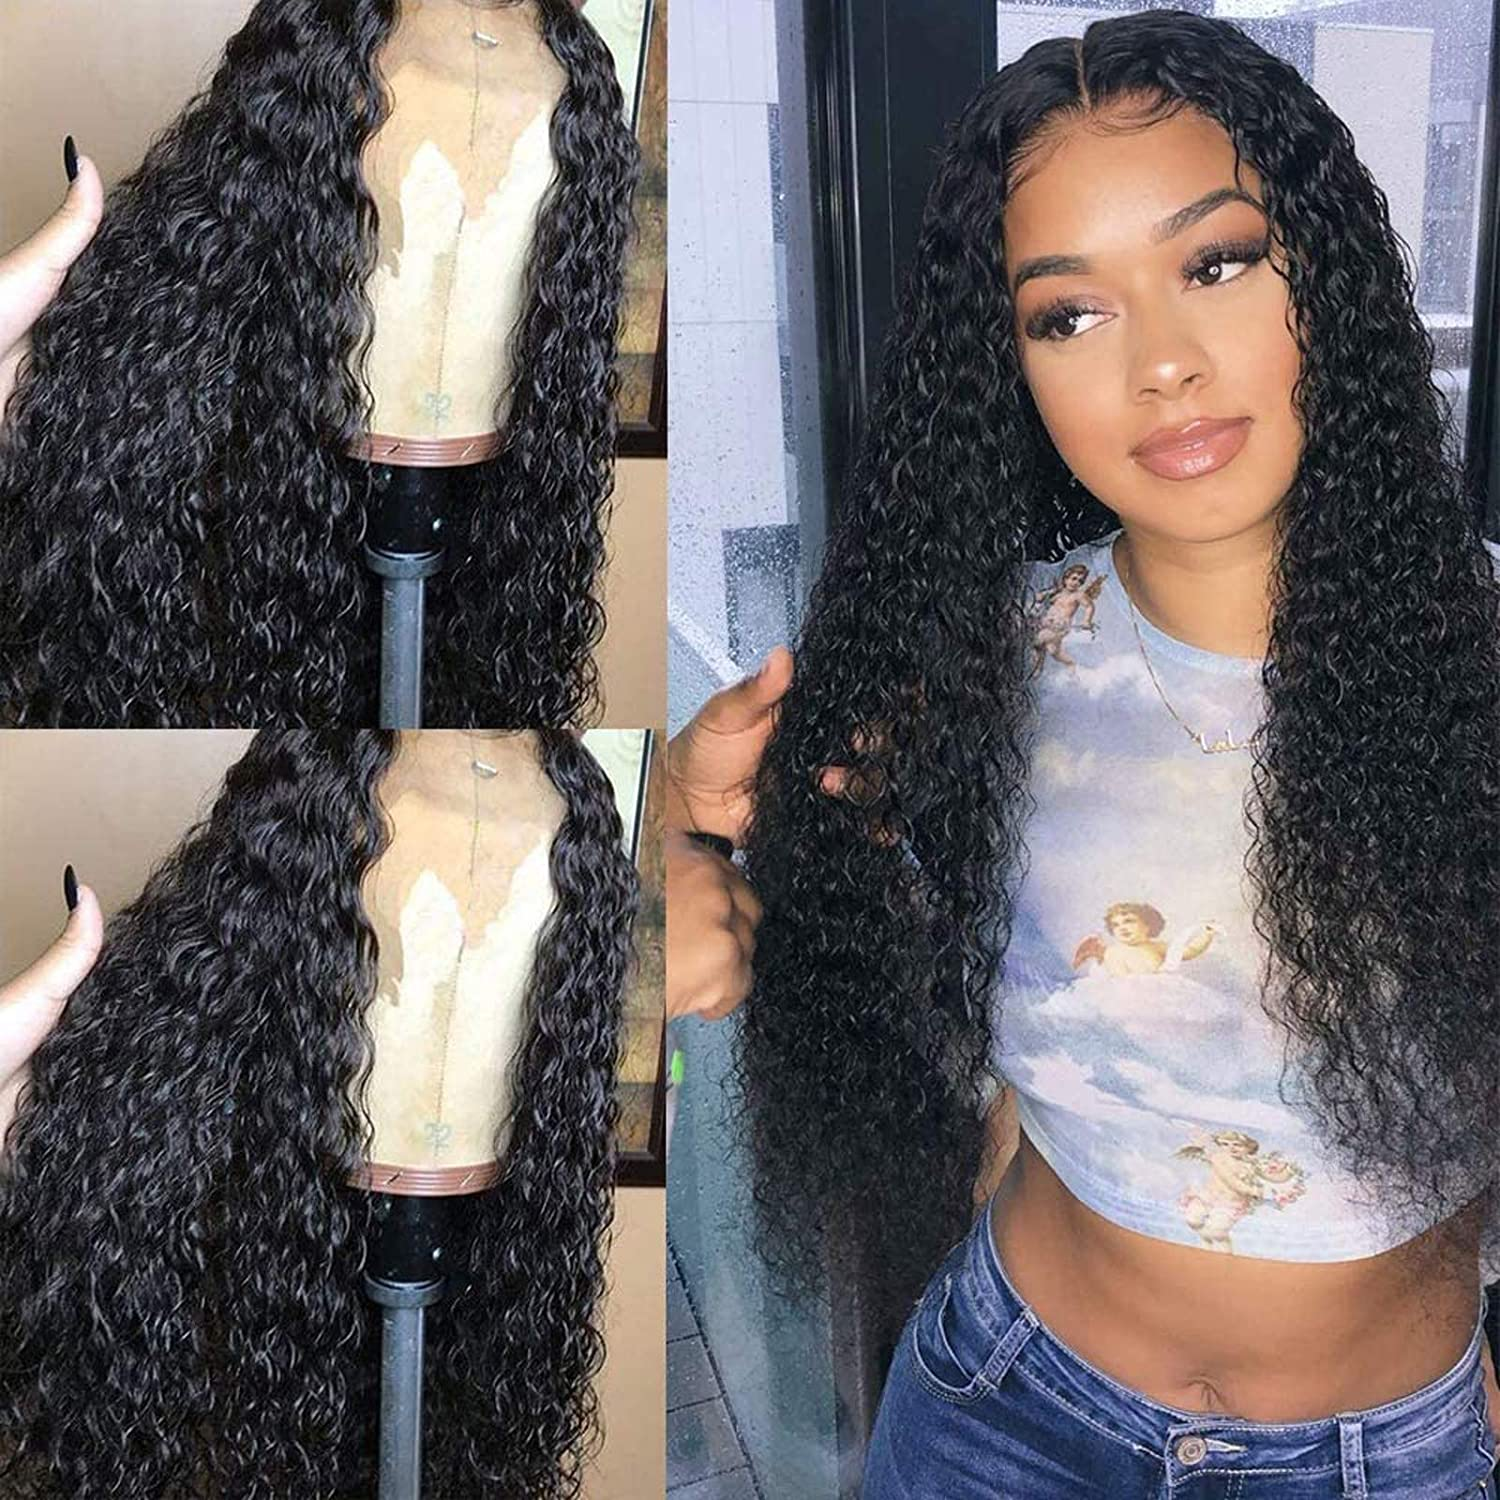 Max 82% OFF KAFEIFR 13x4 Human Hair Wig For Women Fron Water Black Over item handling ☆ Wave Lace